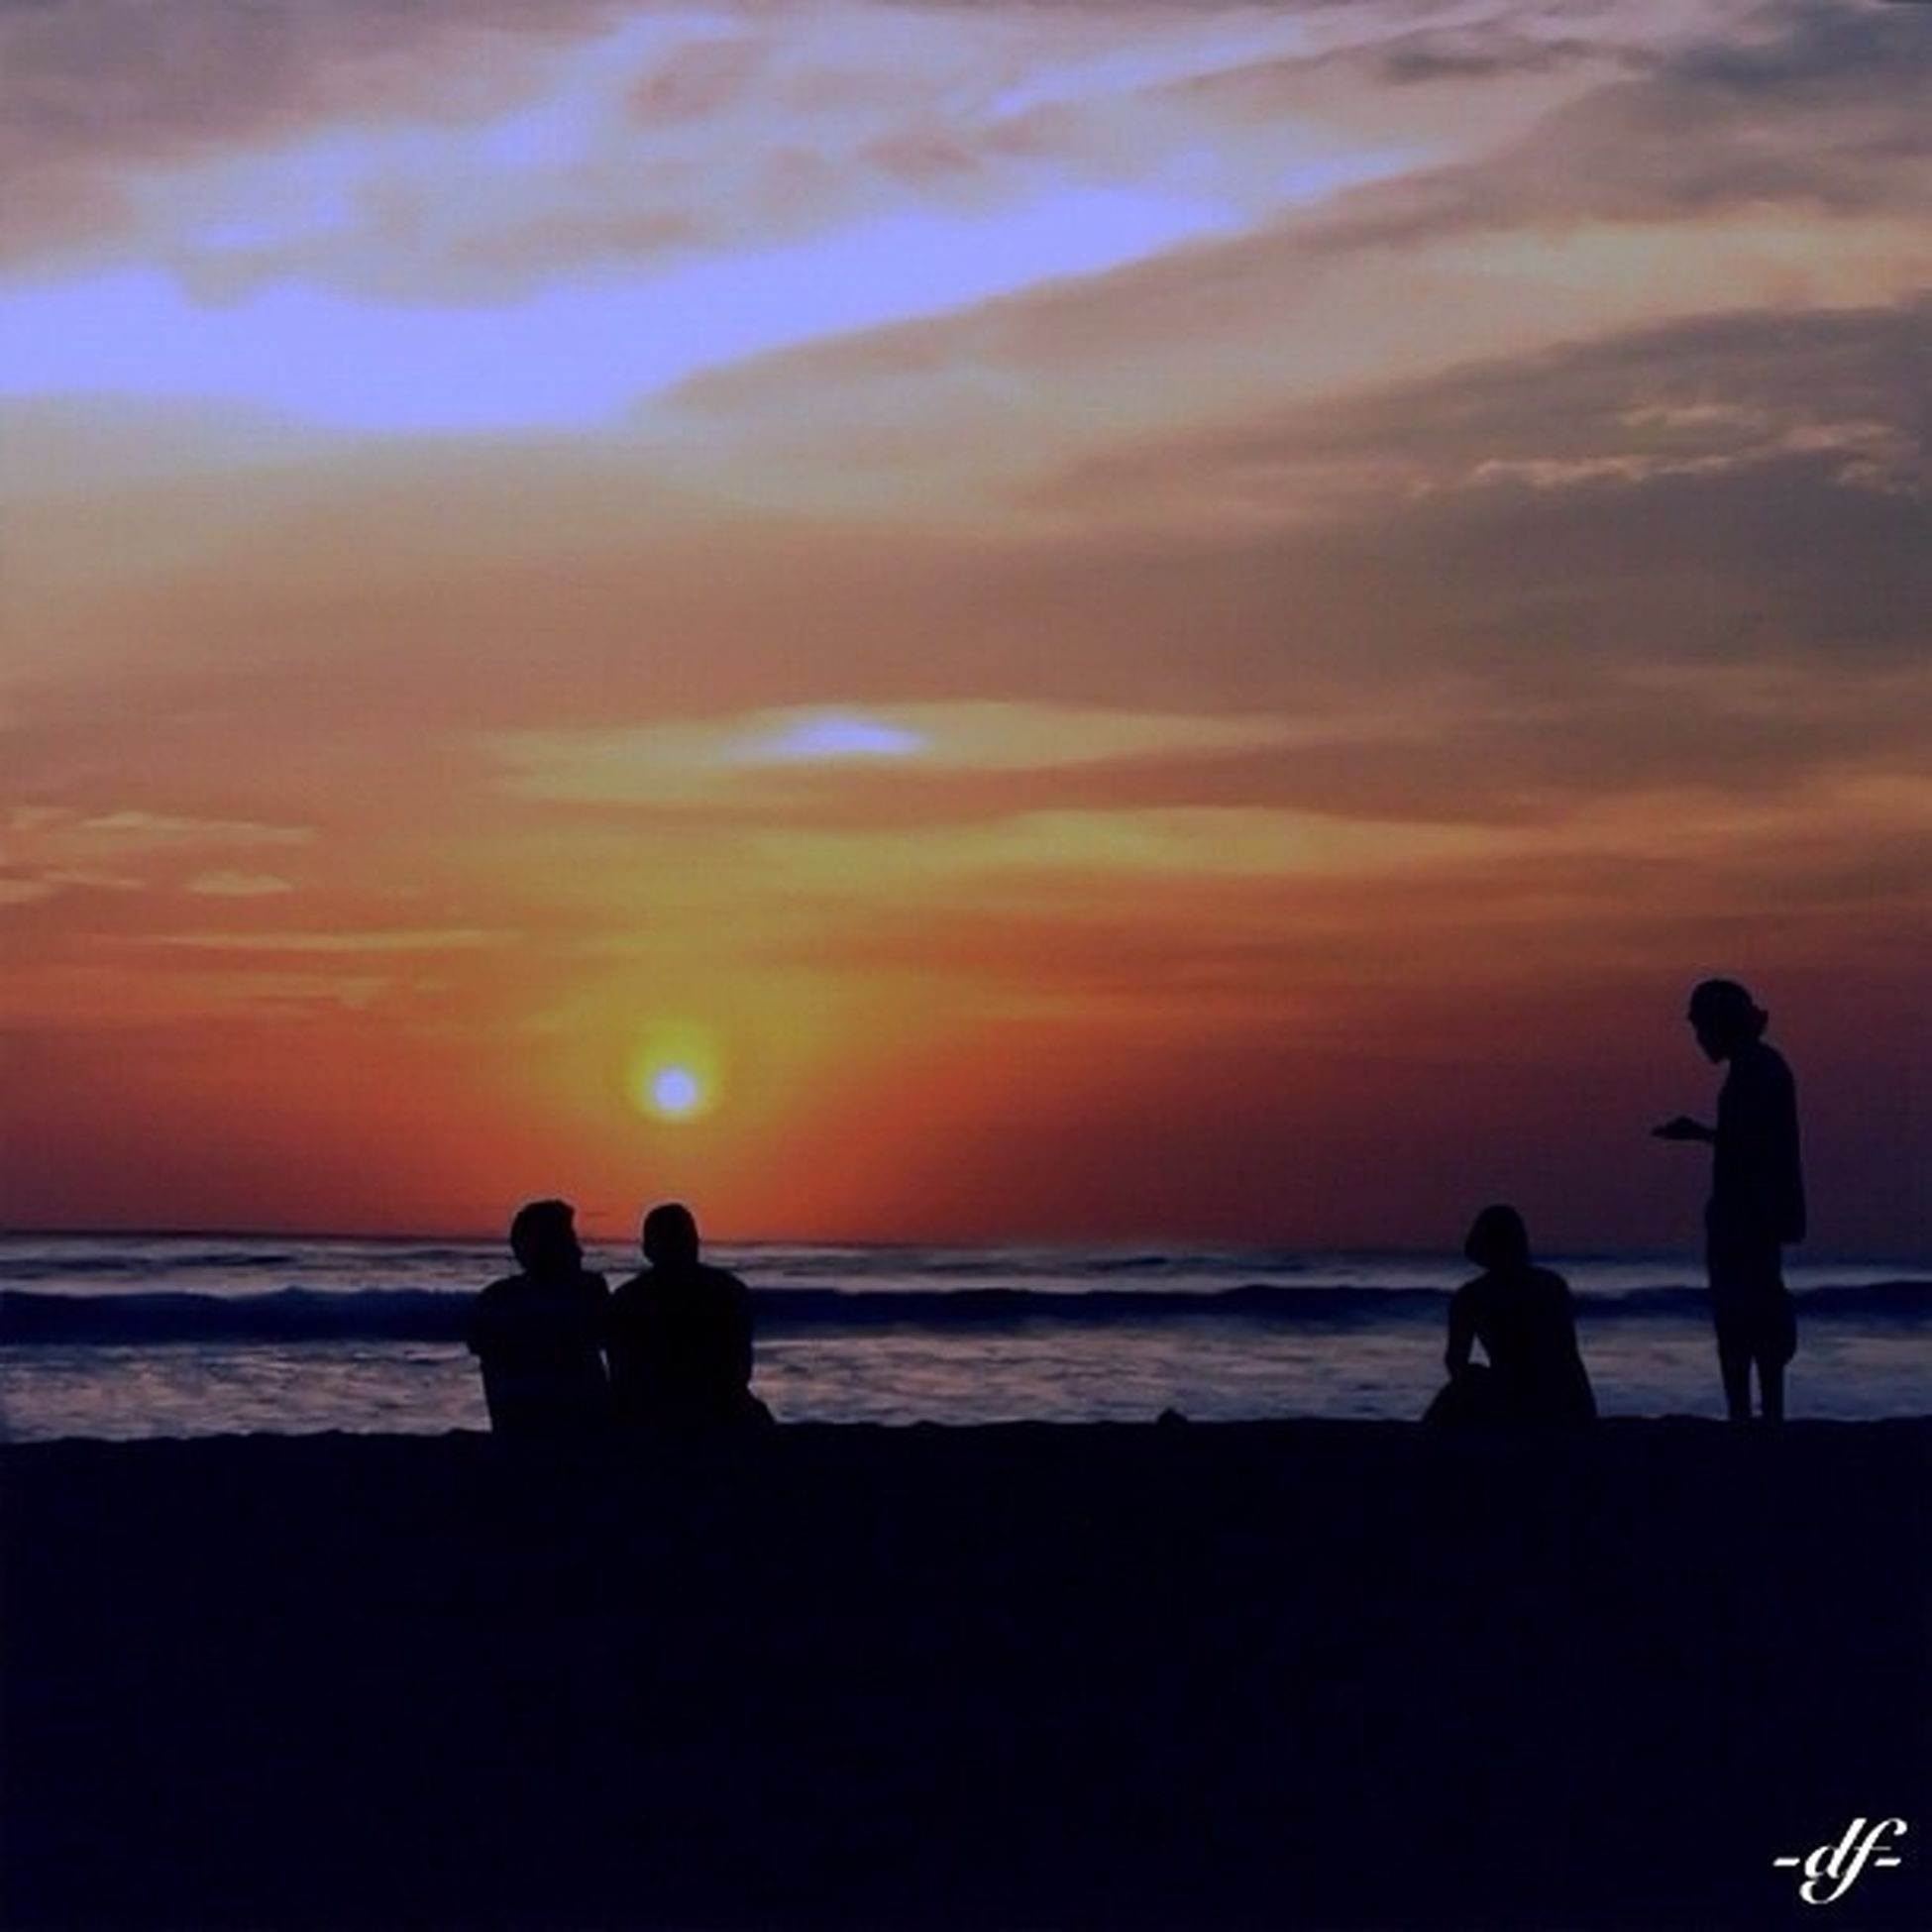 sunset, water, silhouette, sea, horizon over water, togetherness, lifestyles, leisure activity, beach, sky, men, beauty in nature, scenics, orange color, bonding, shore, love, tranquil scene